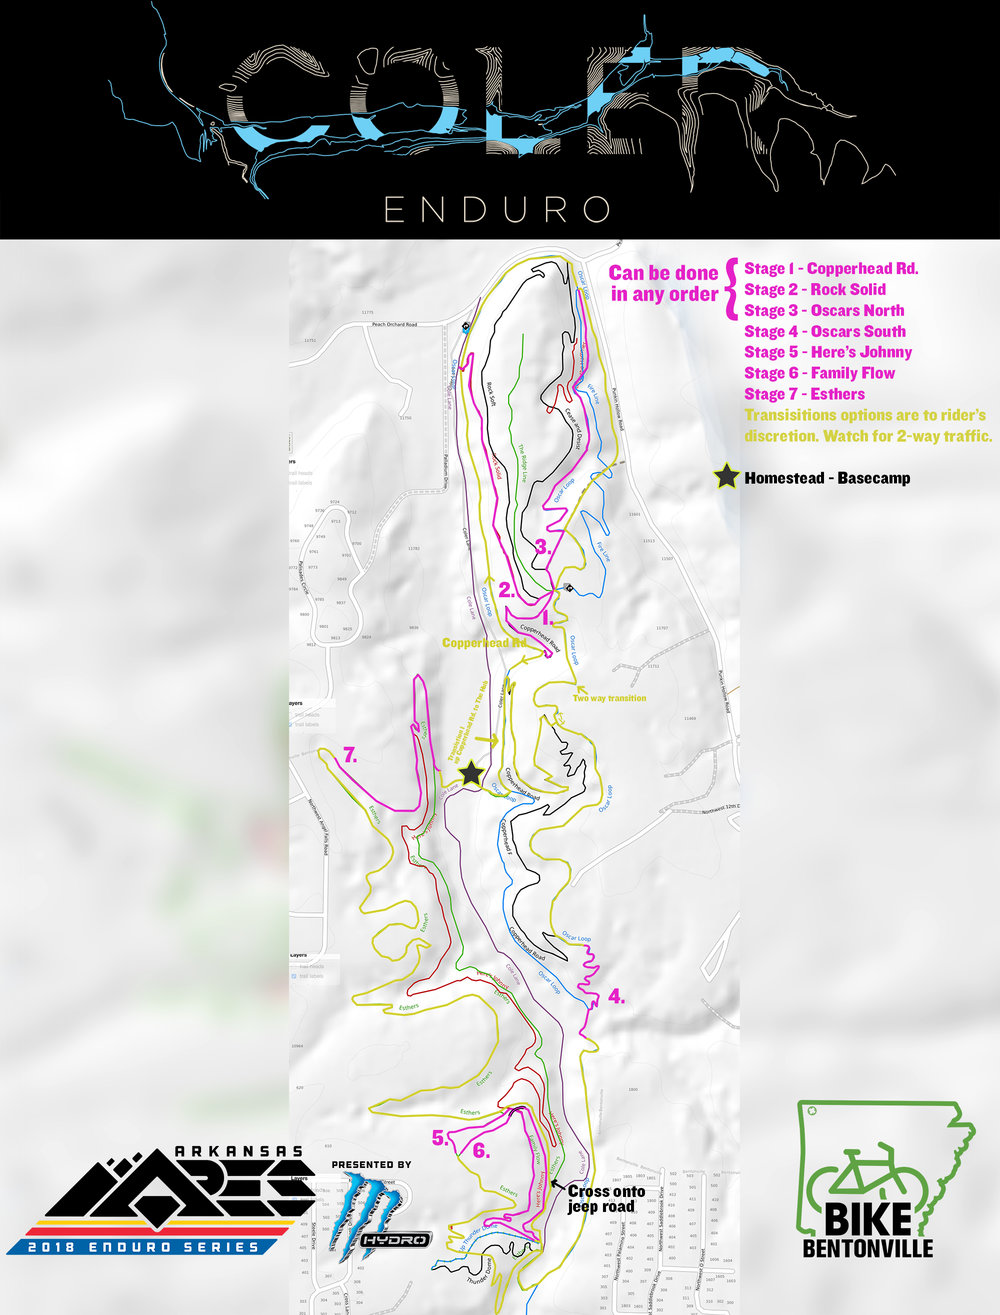 coler_enduro_course_2018_SMALL.jpg